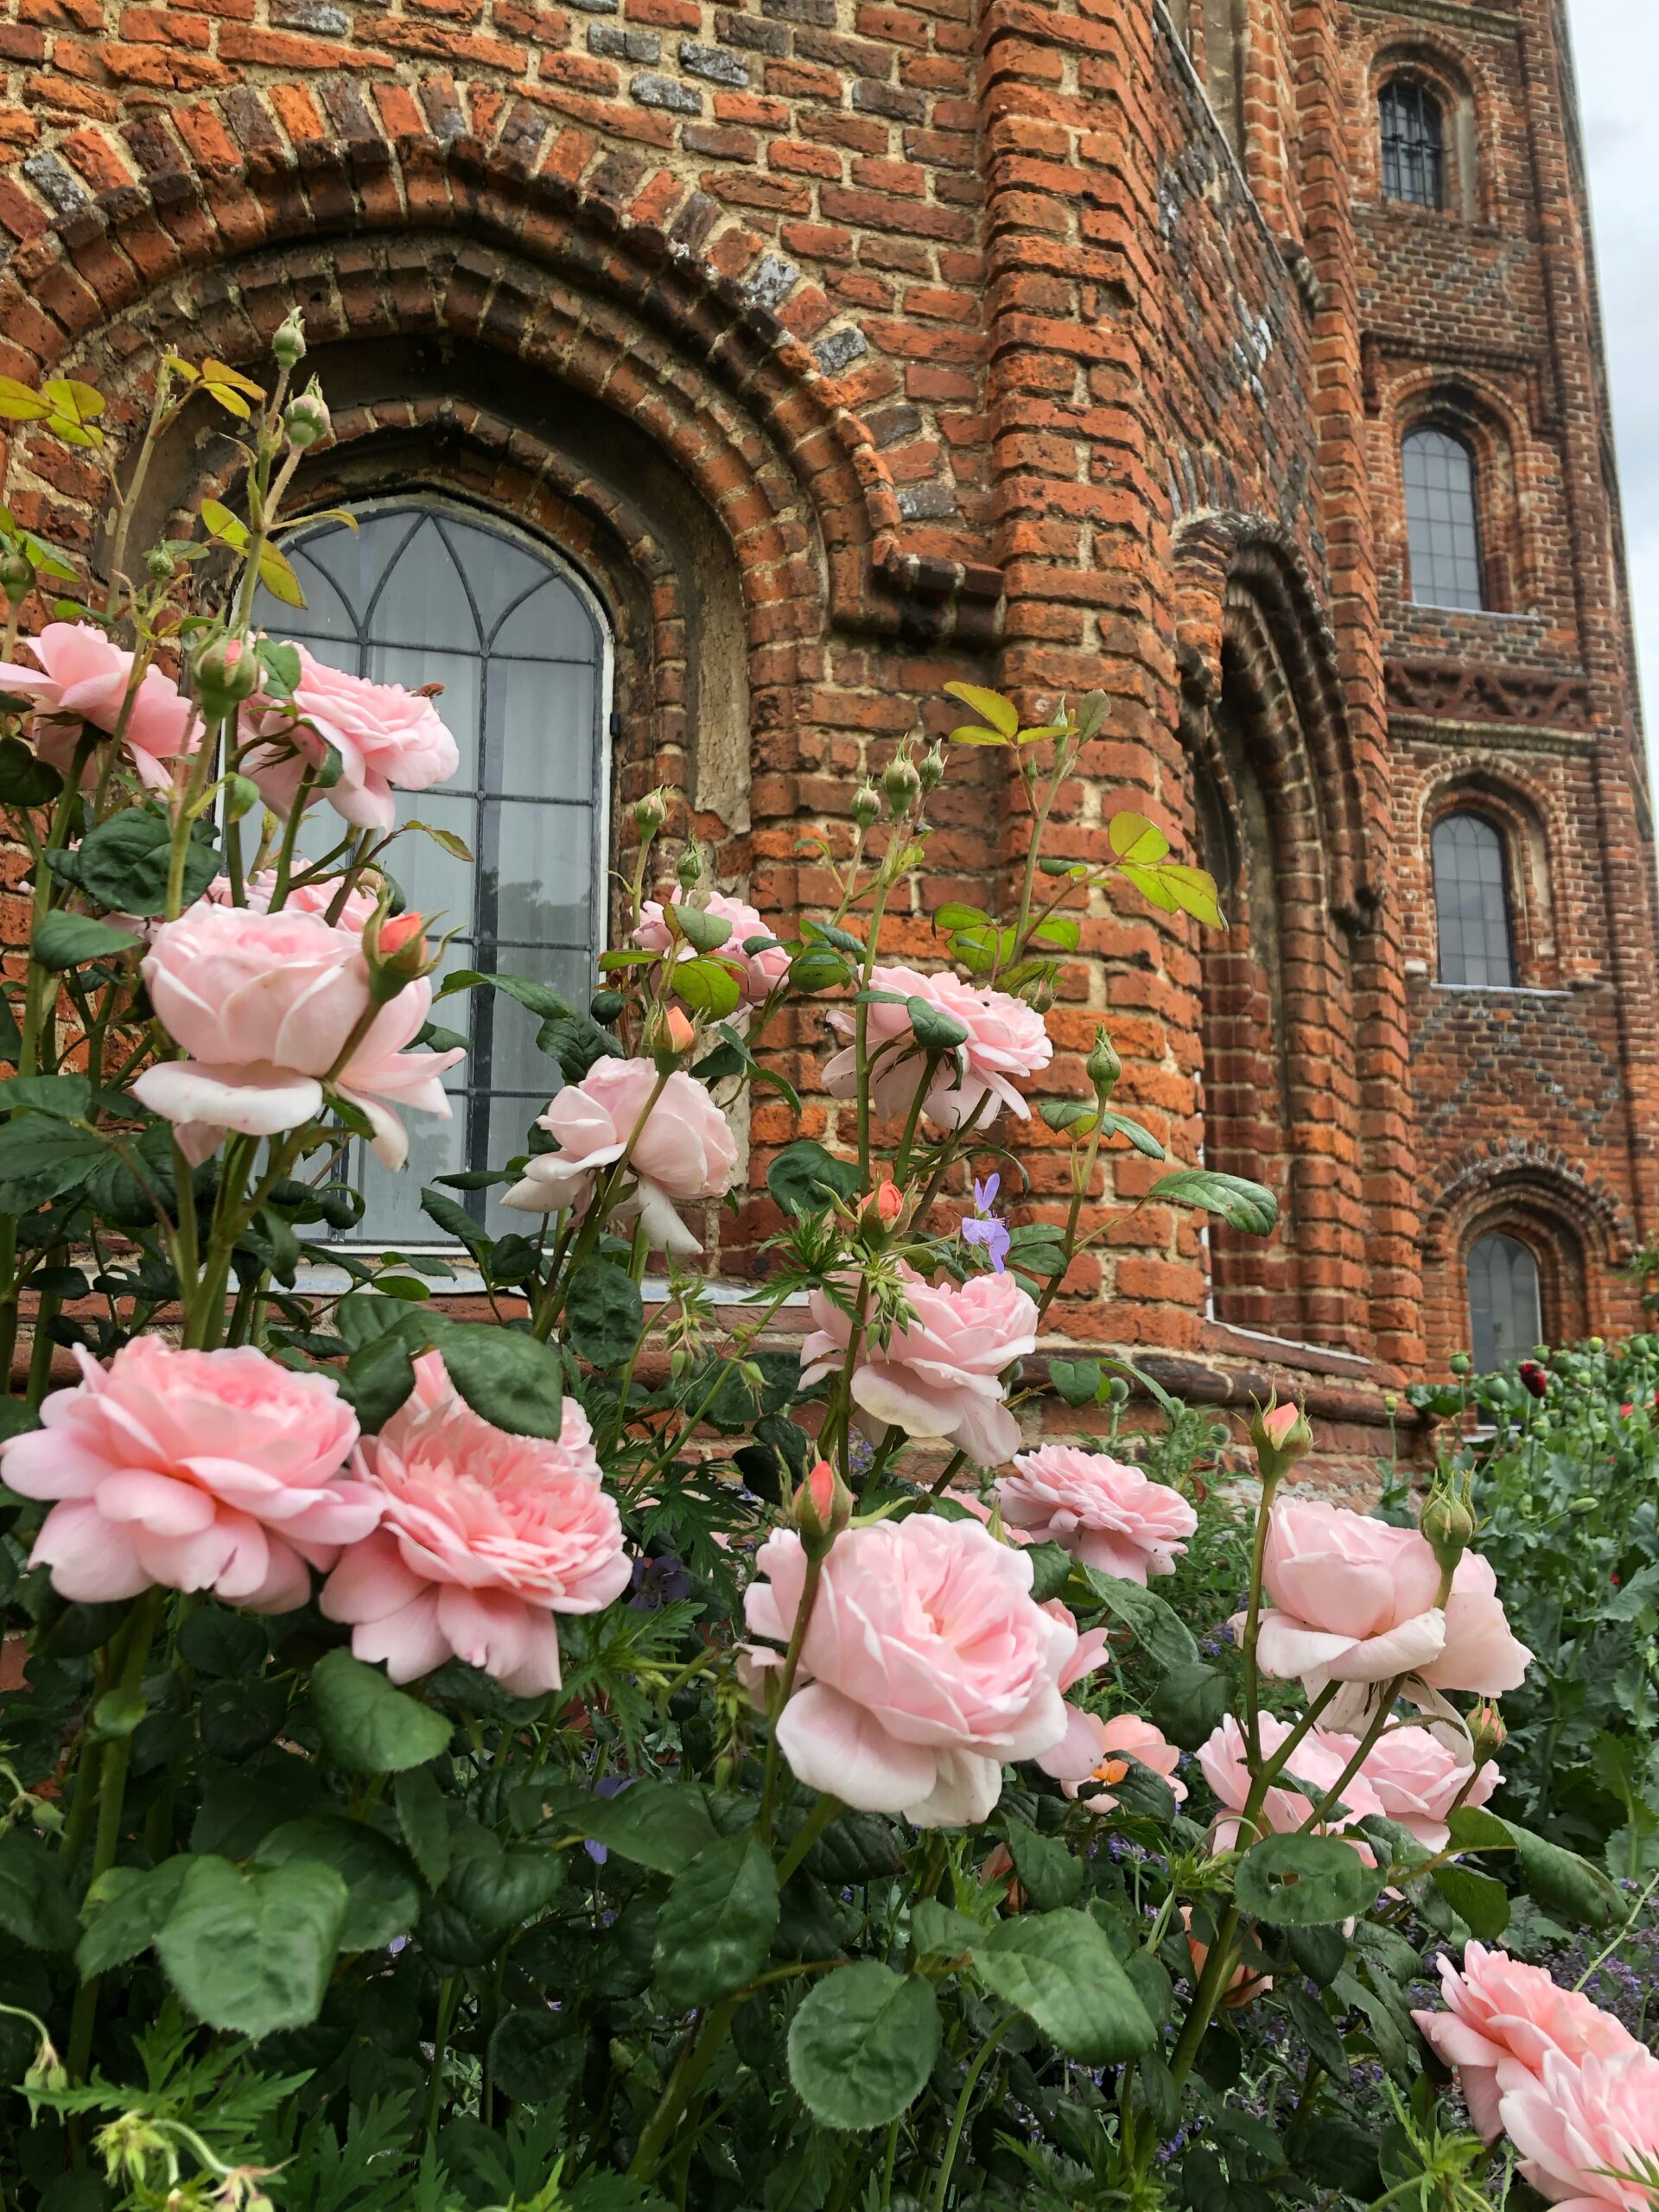 Roses outside the Tudor tower